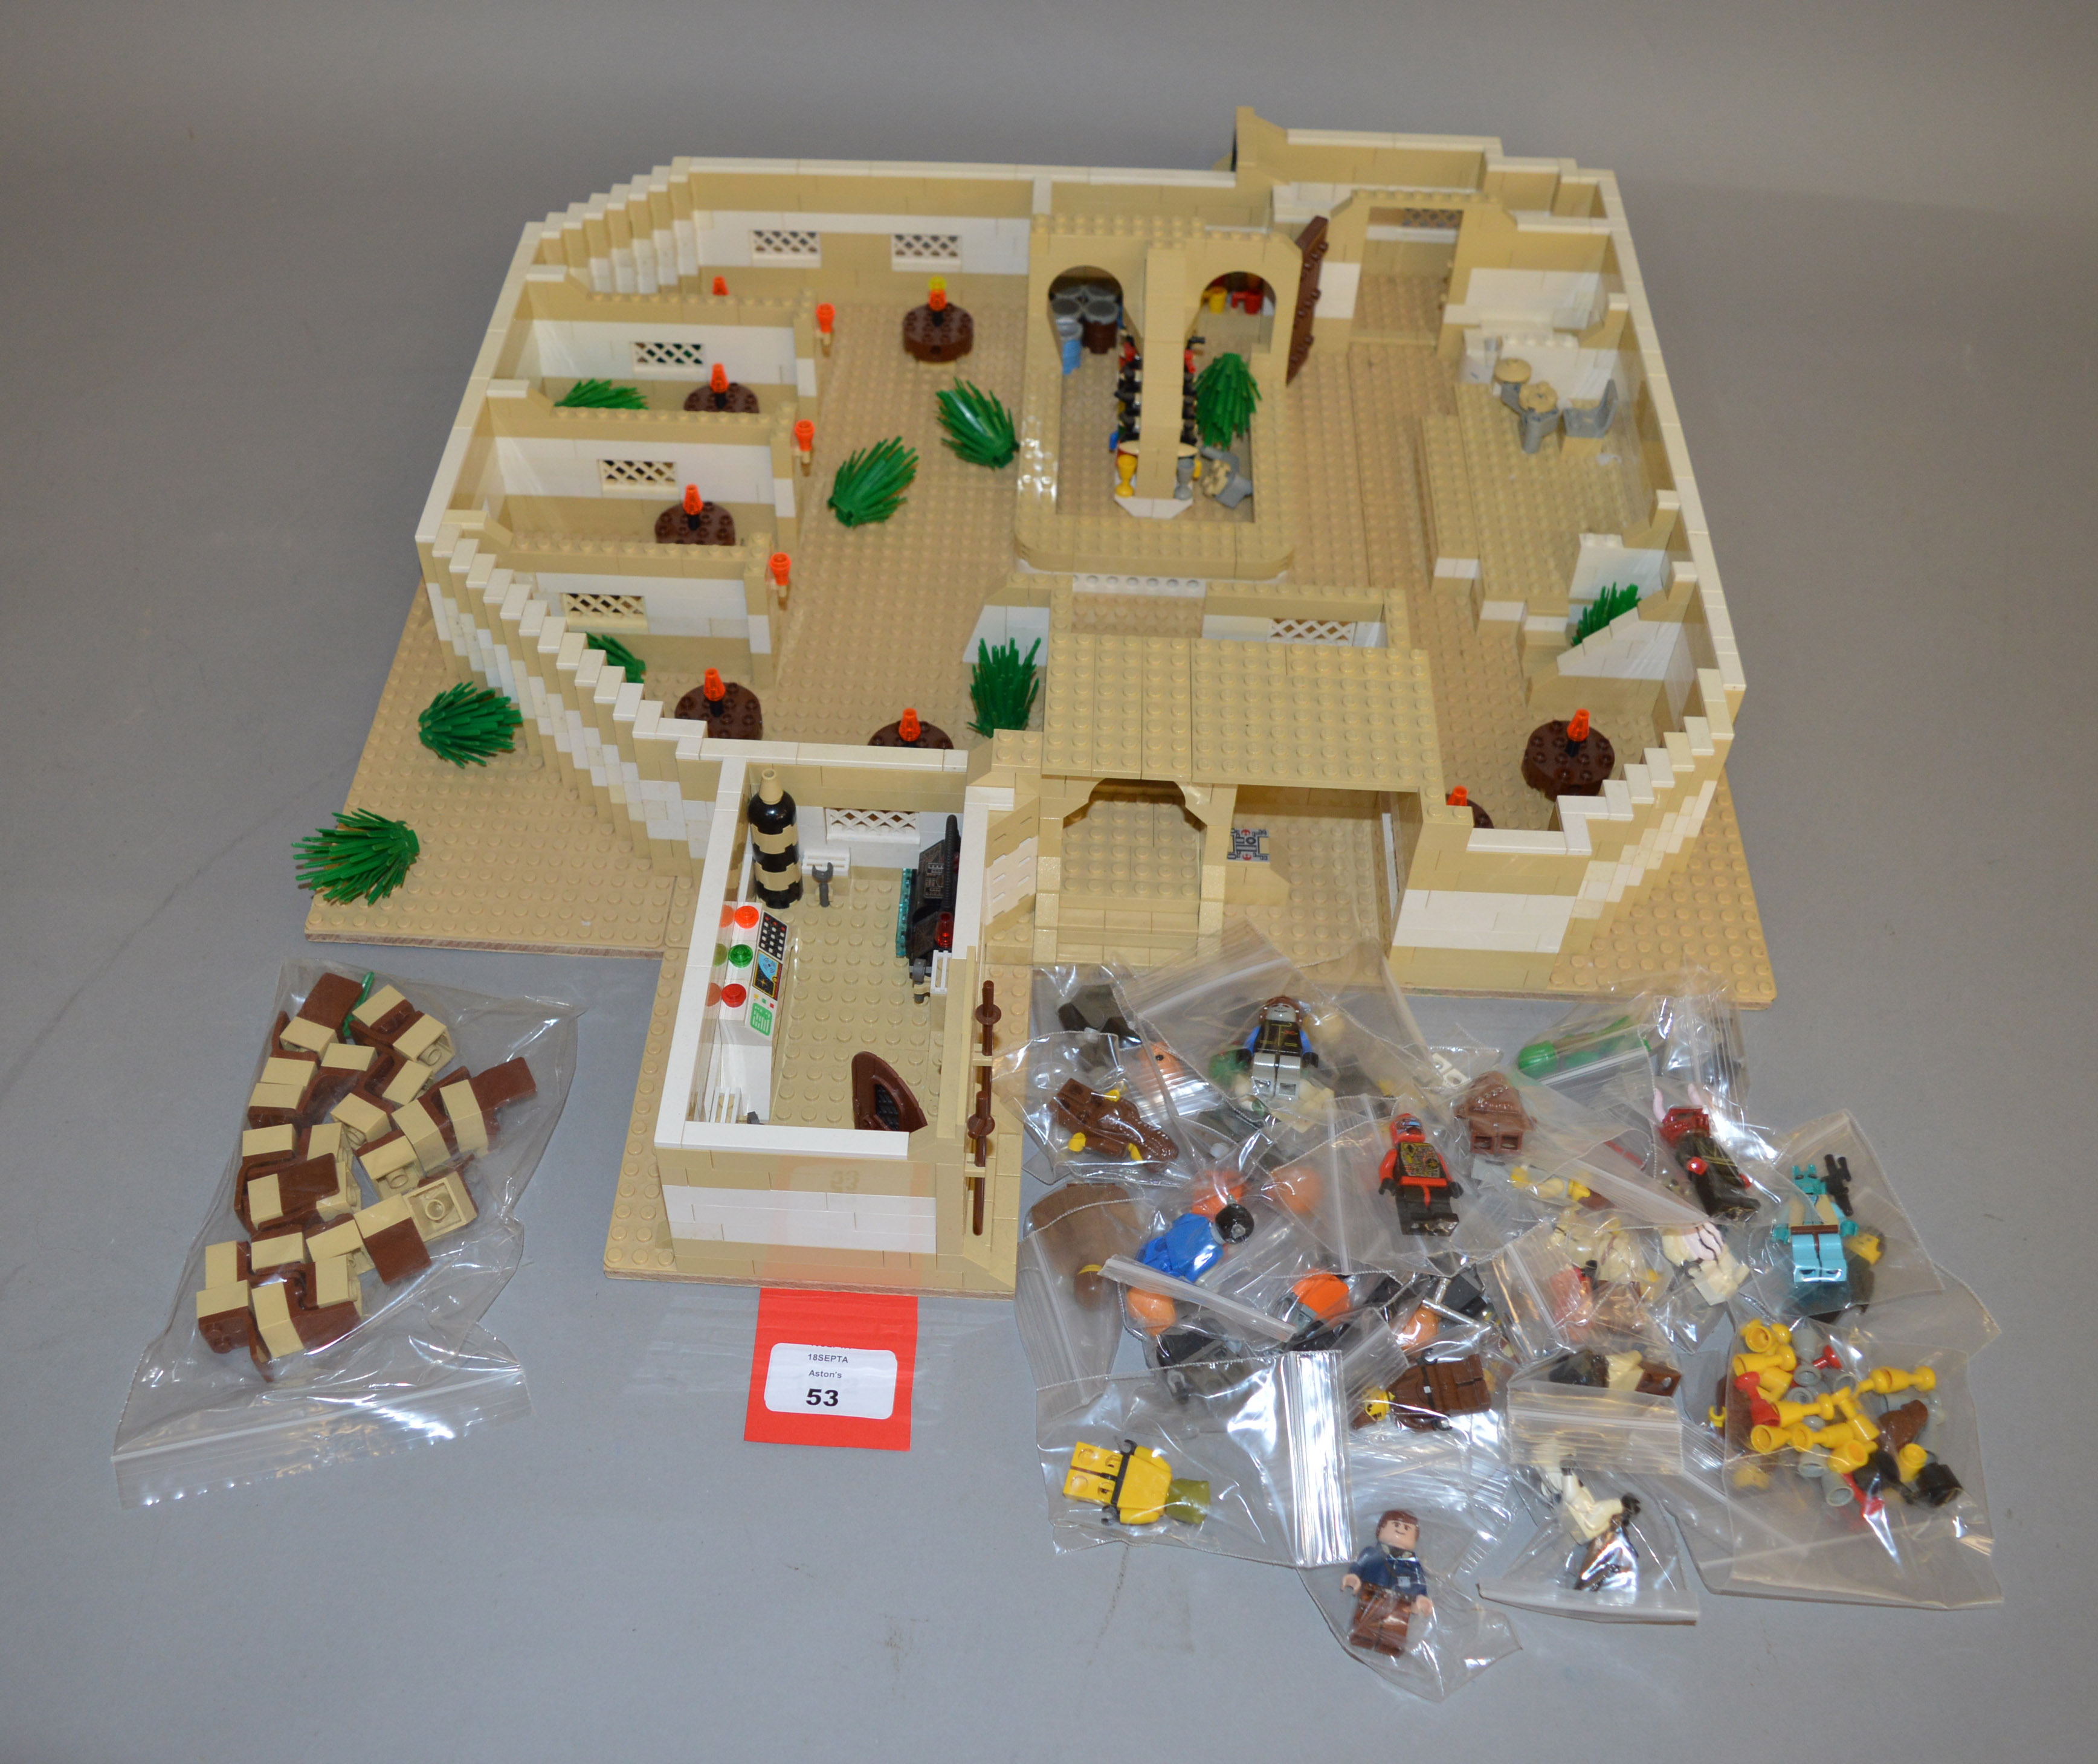 Lot 53 - Lego, a Star Wars cantina (not built from official Lego plans), with a quantity of minifigures,